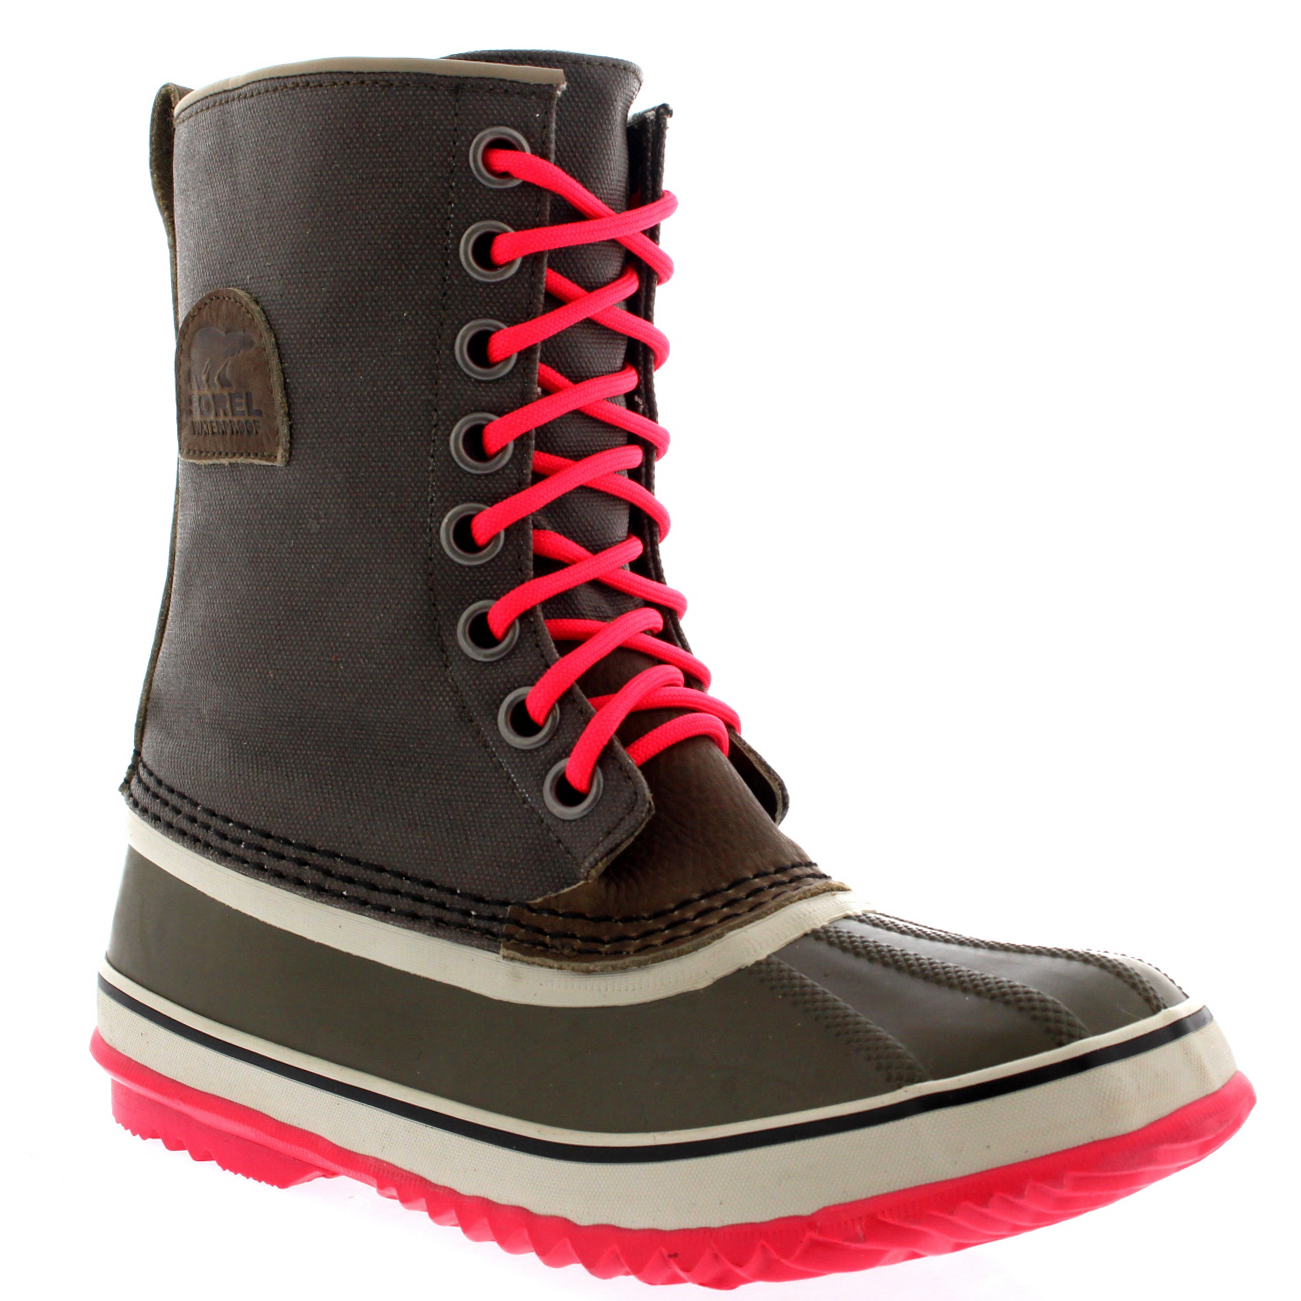 Luxury Sorel 1964 Pac 2  Winter Boots Women39s  Free UK Delivery